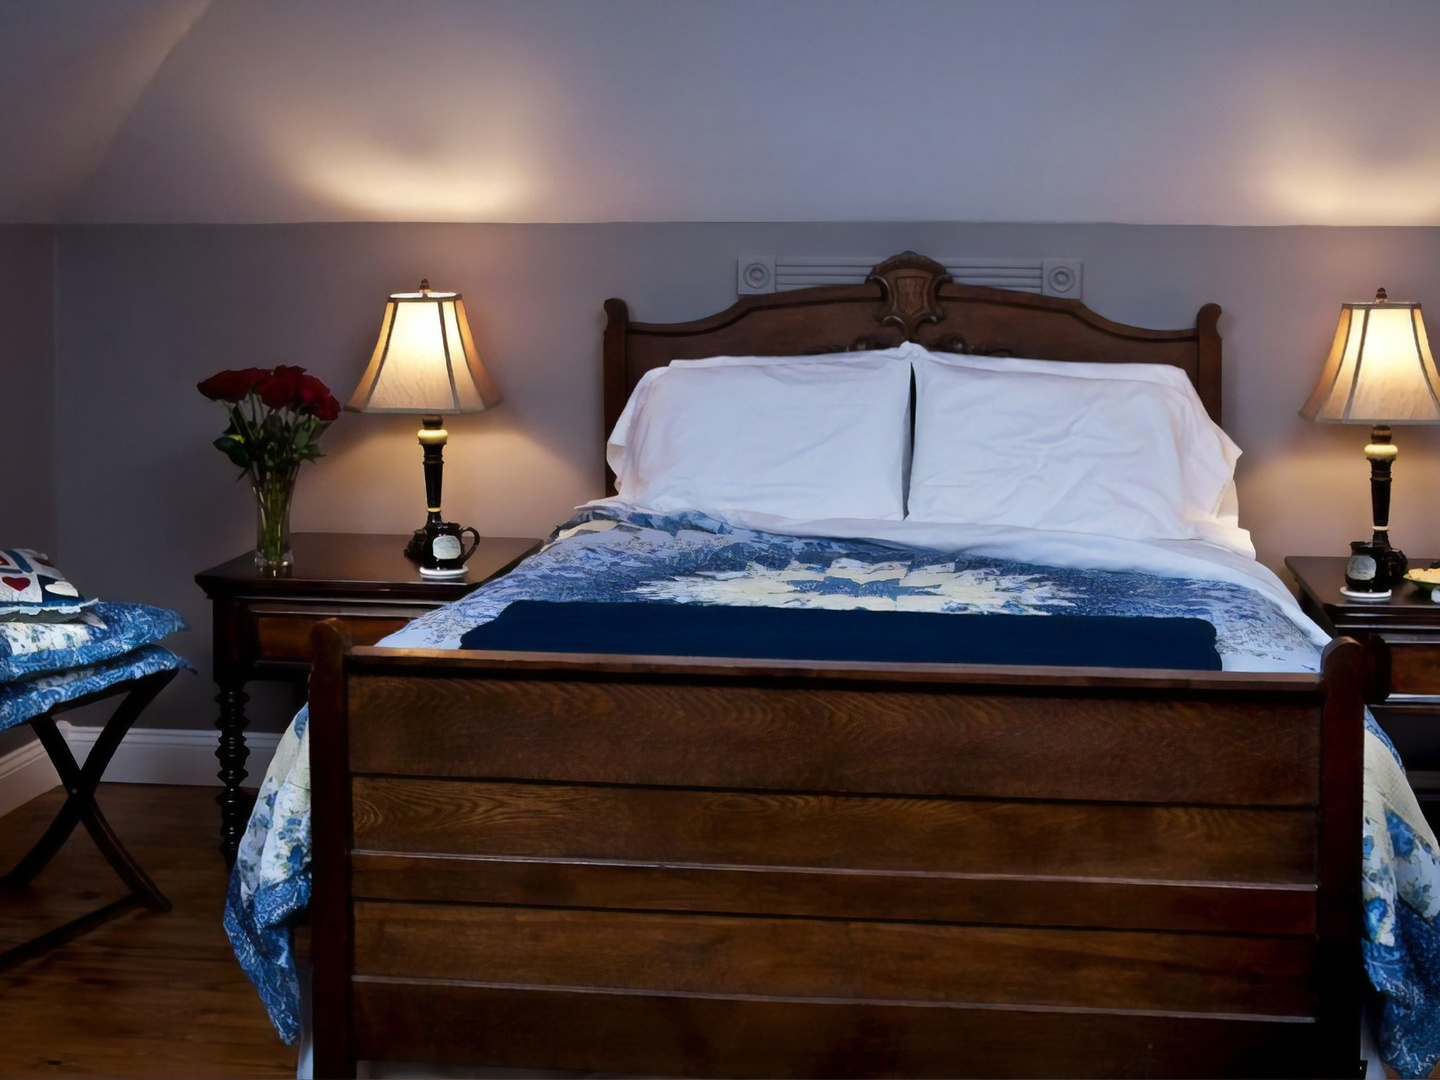 A bedroom with a bed and desk in a room at White Oak Manor Bed and Breakfast.